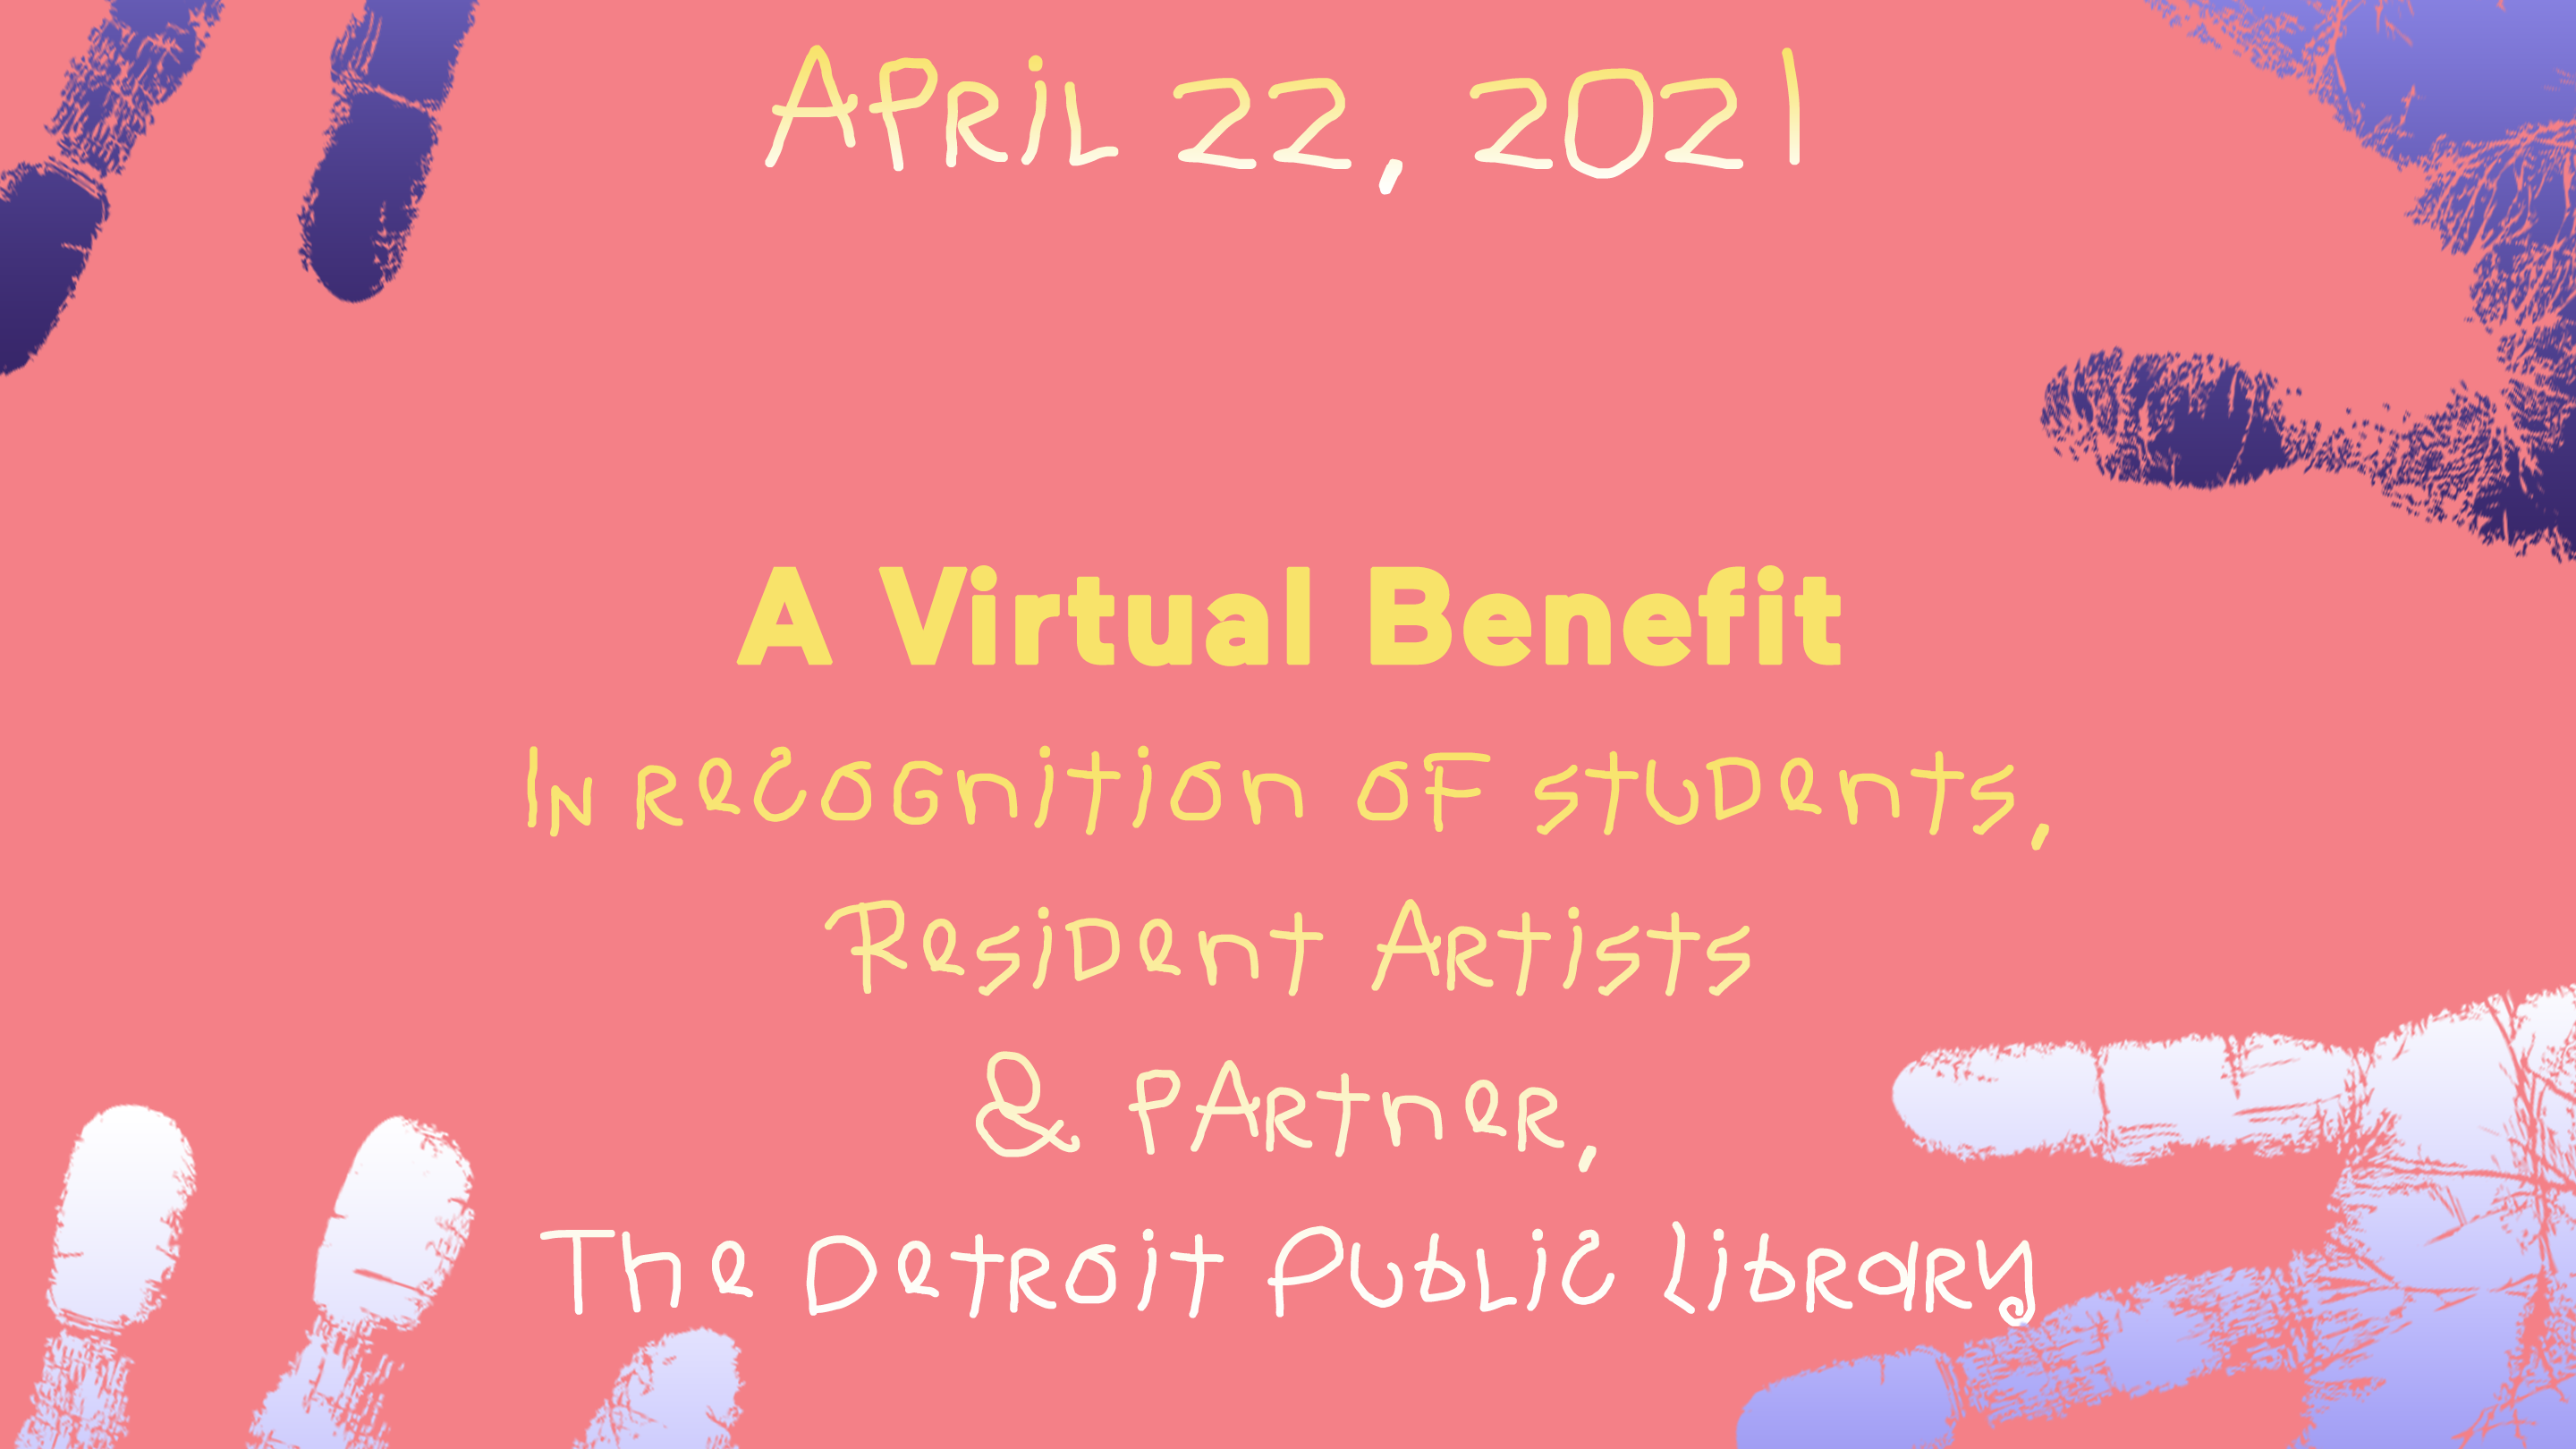 Photo for Project Art Detroit's 5th Year Anniversary on ViewStub